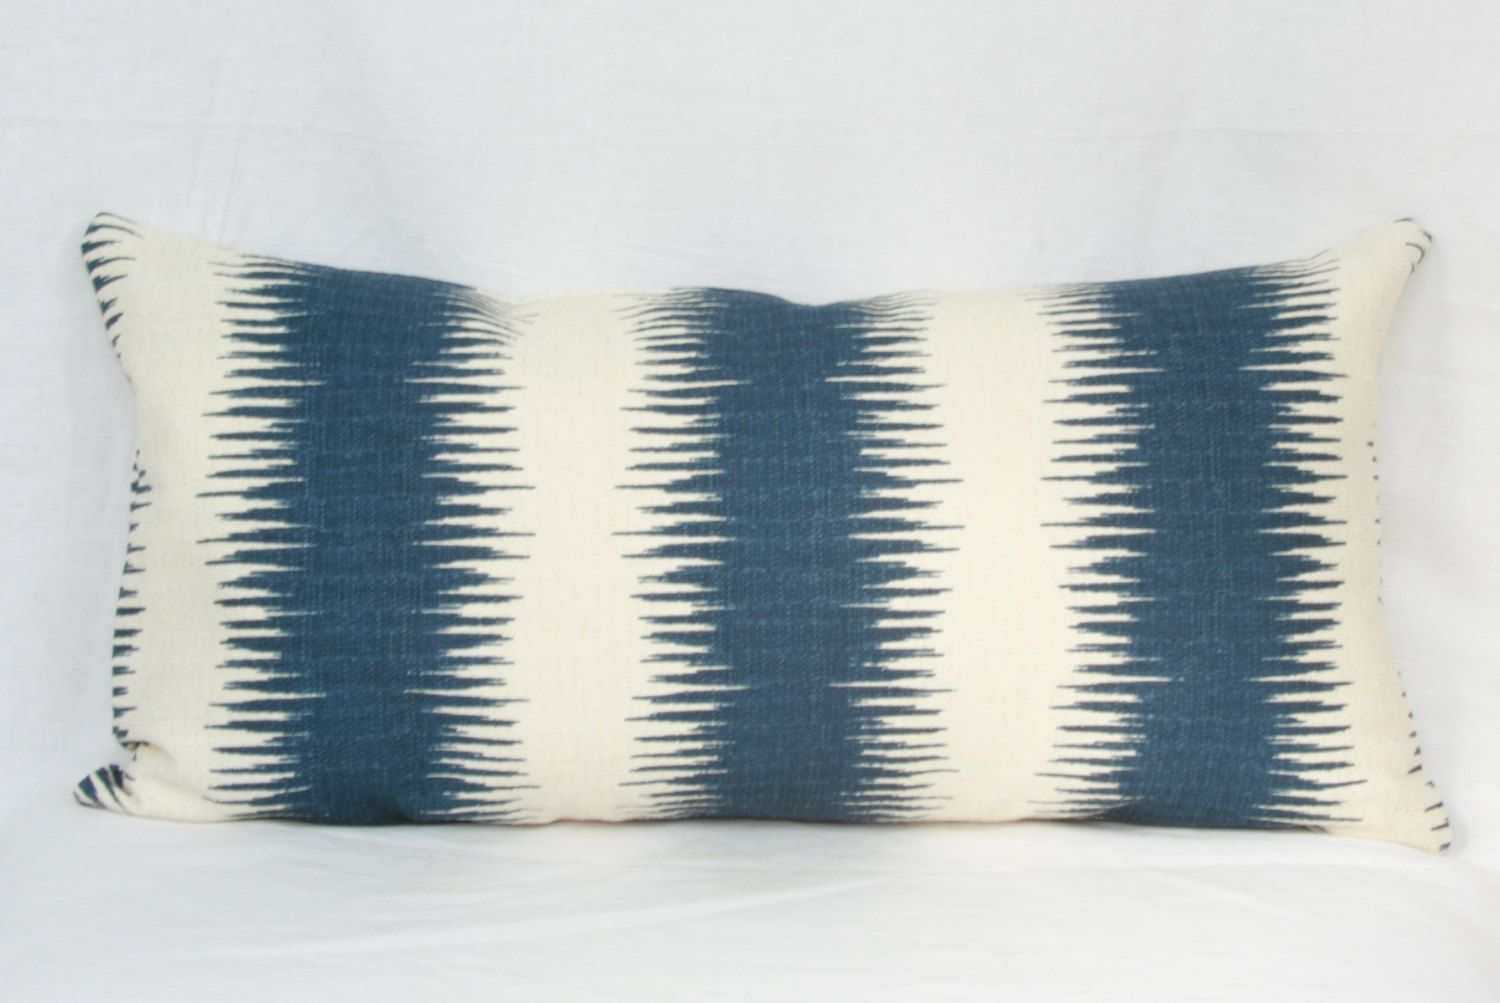 16X26 Pillow Insert Entrancing Blue Natural Tribal Stripe Throw Pillow Cover 12X20 12X24 14X24 2018